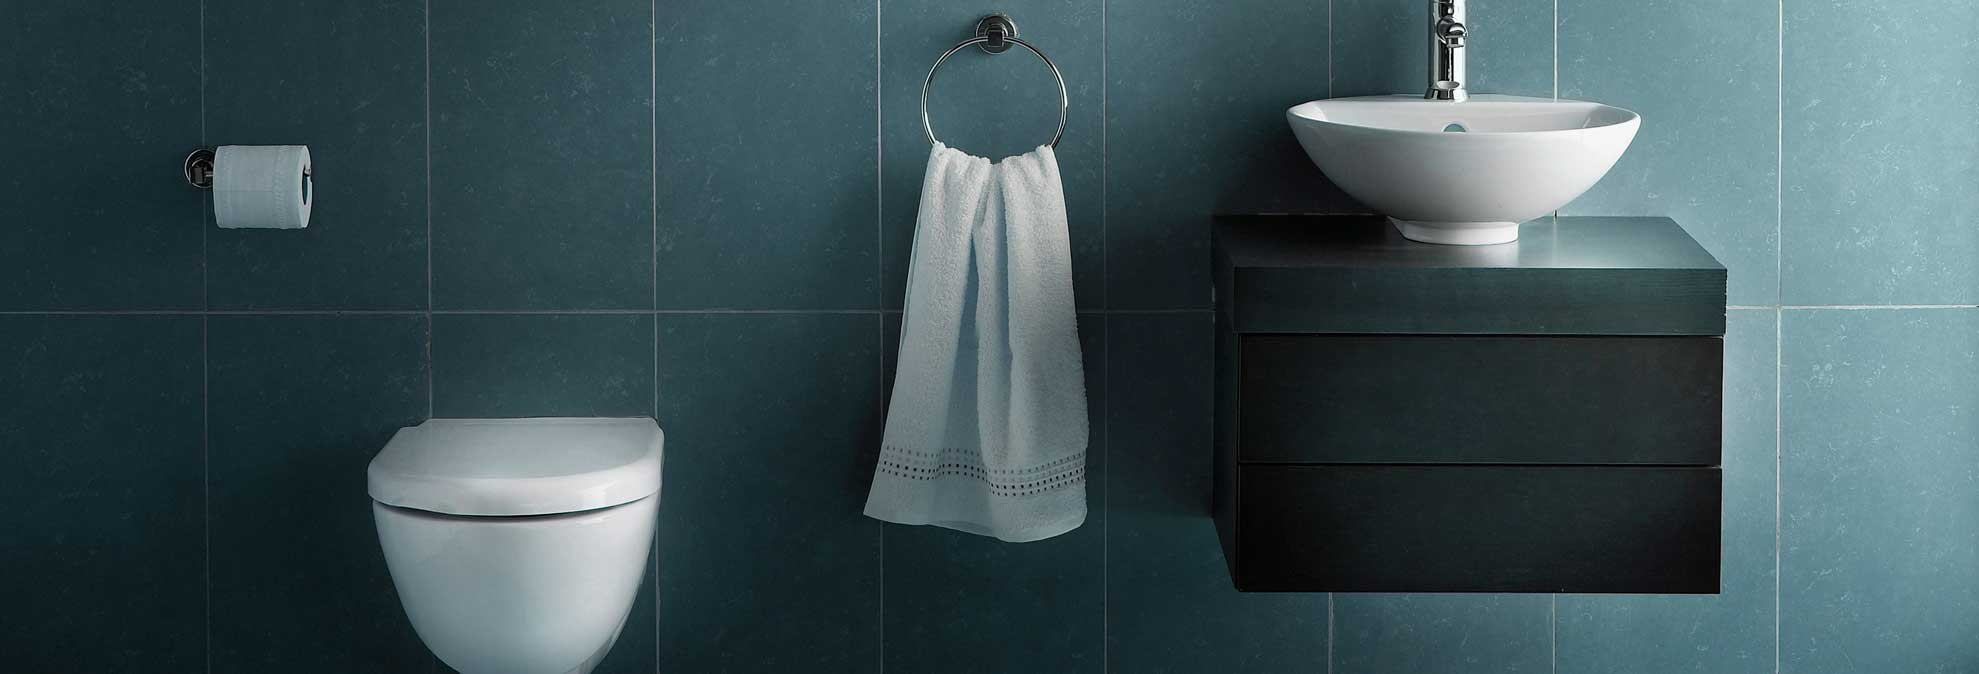 3 ways to keep your bathroom clean and fresh consumer reports